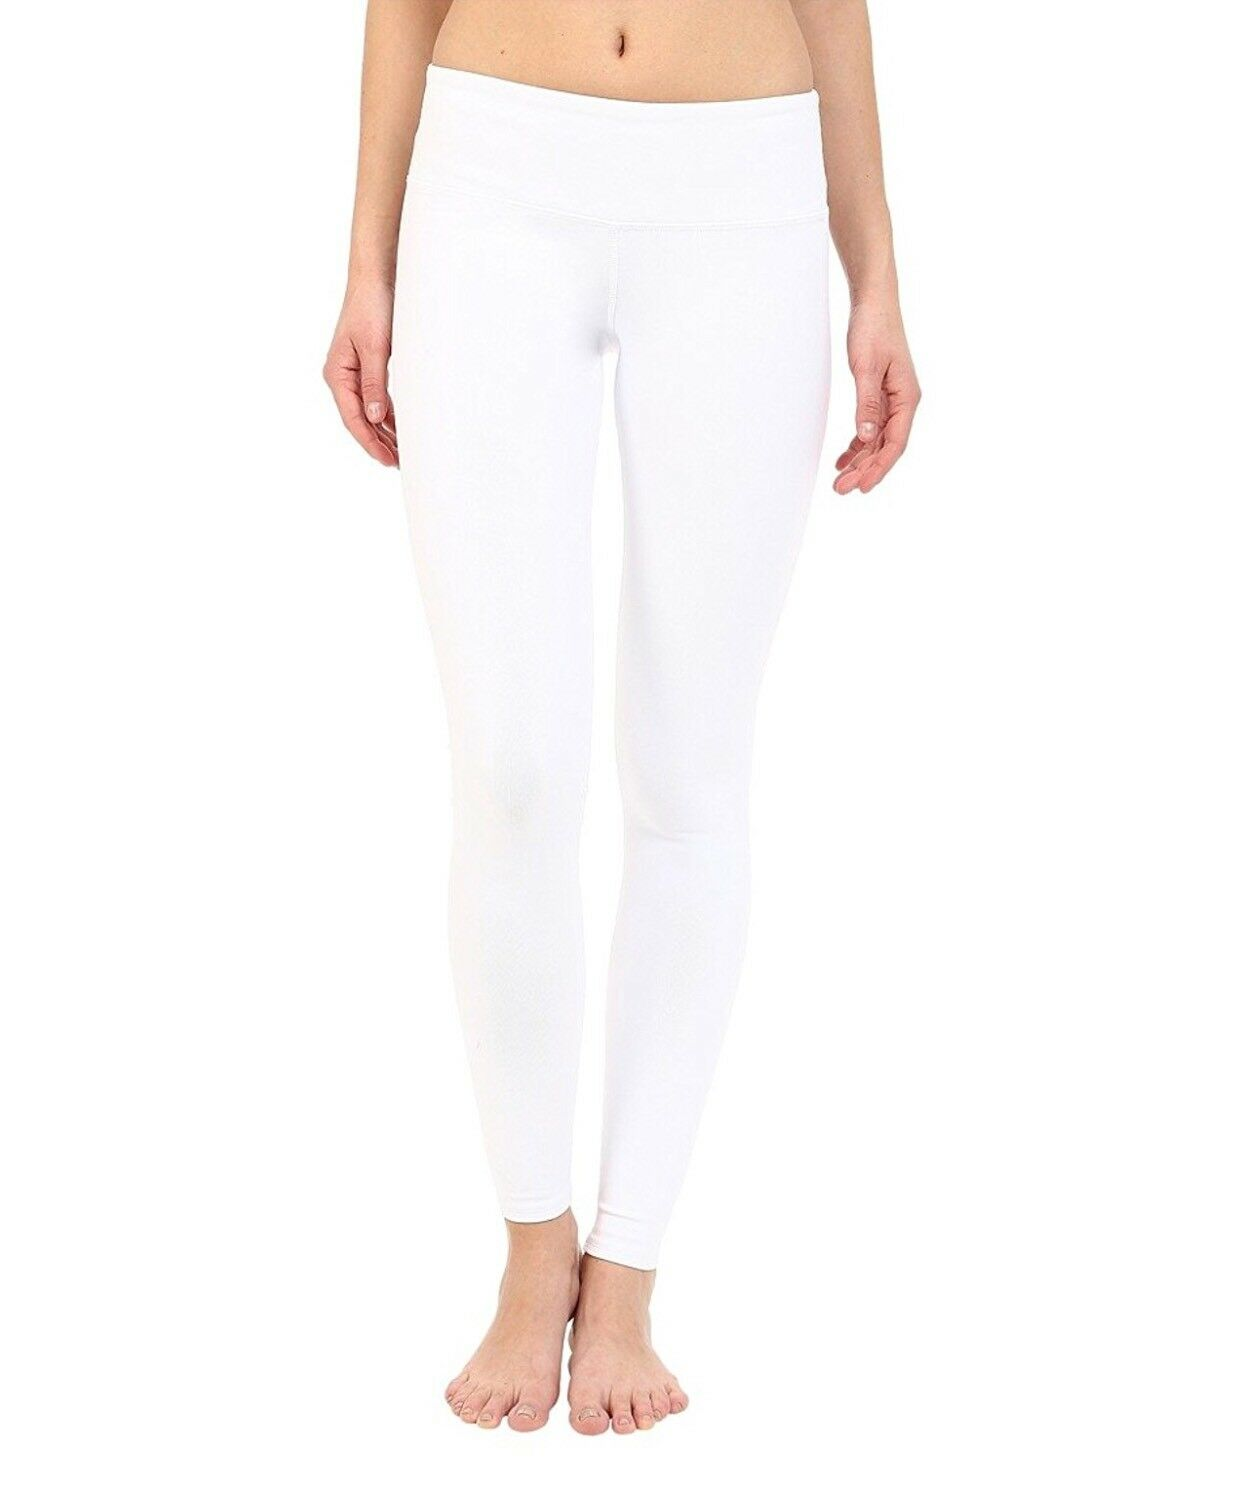 Alo Yoga Leggings White M NWOT Lowered